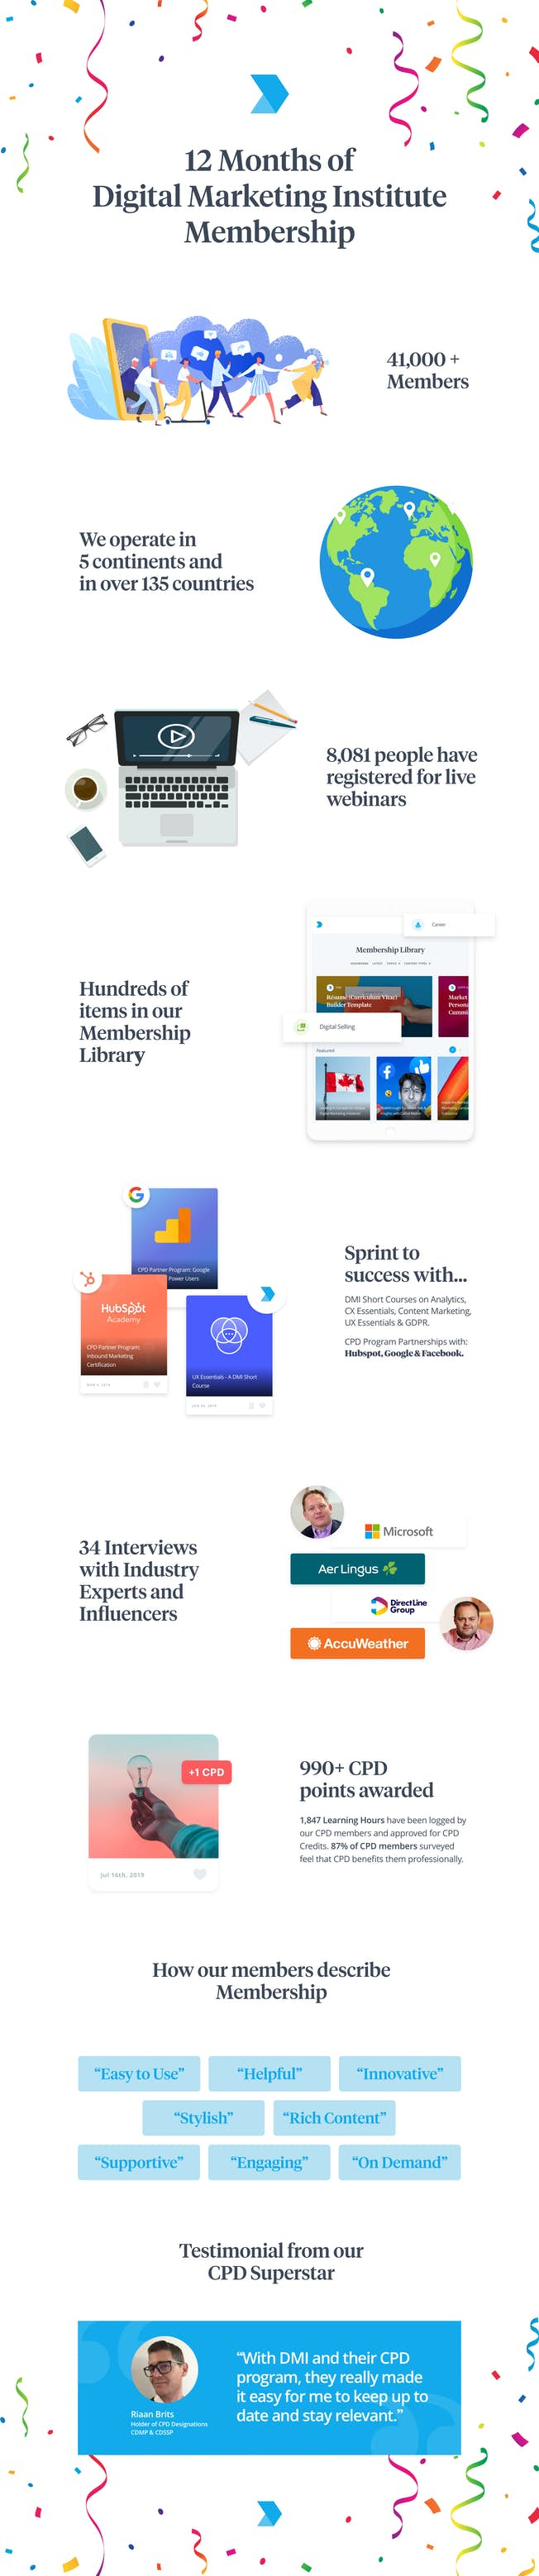 Infographic: 12 Months of Membership